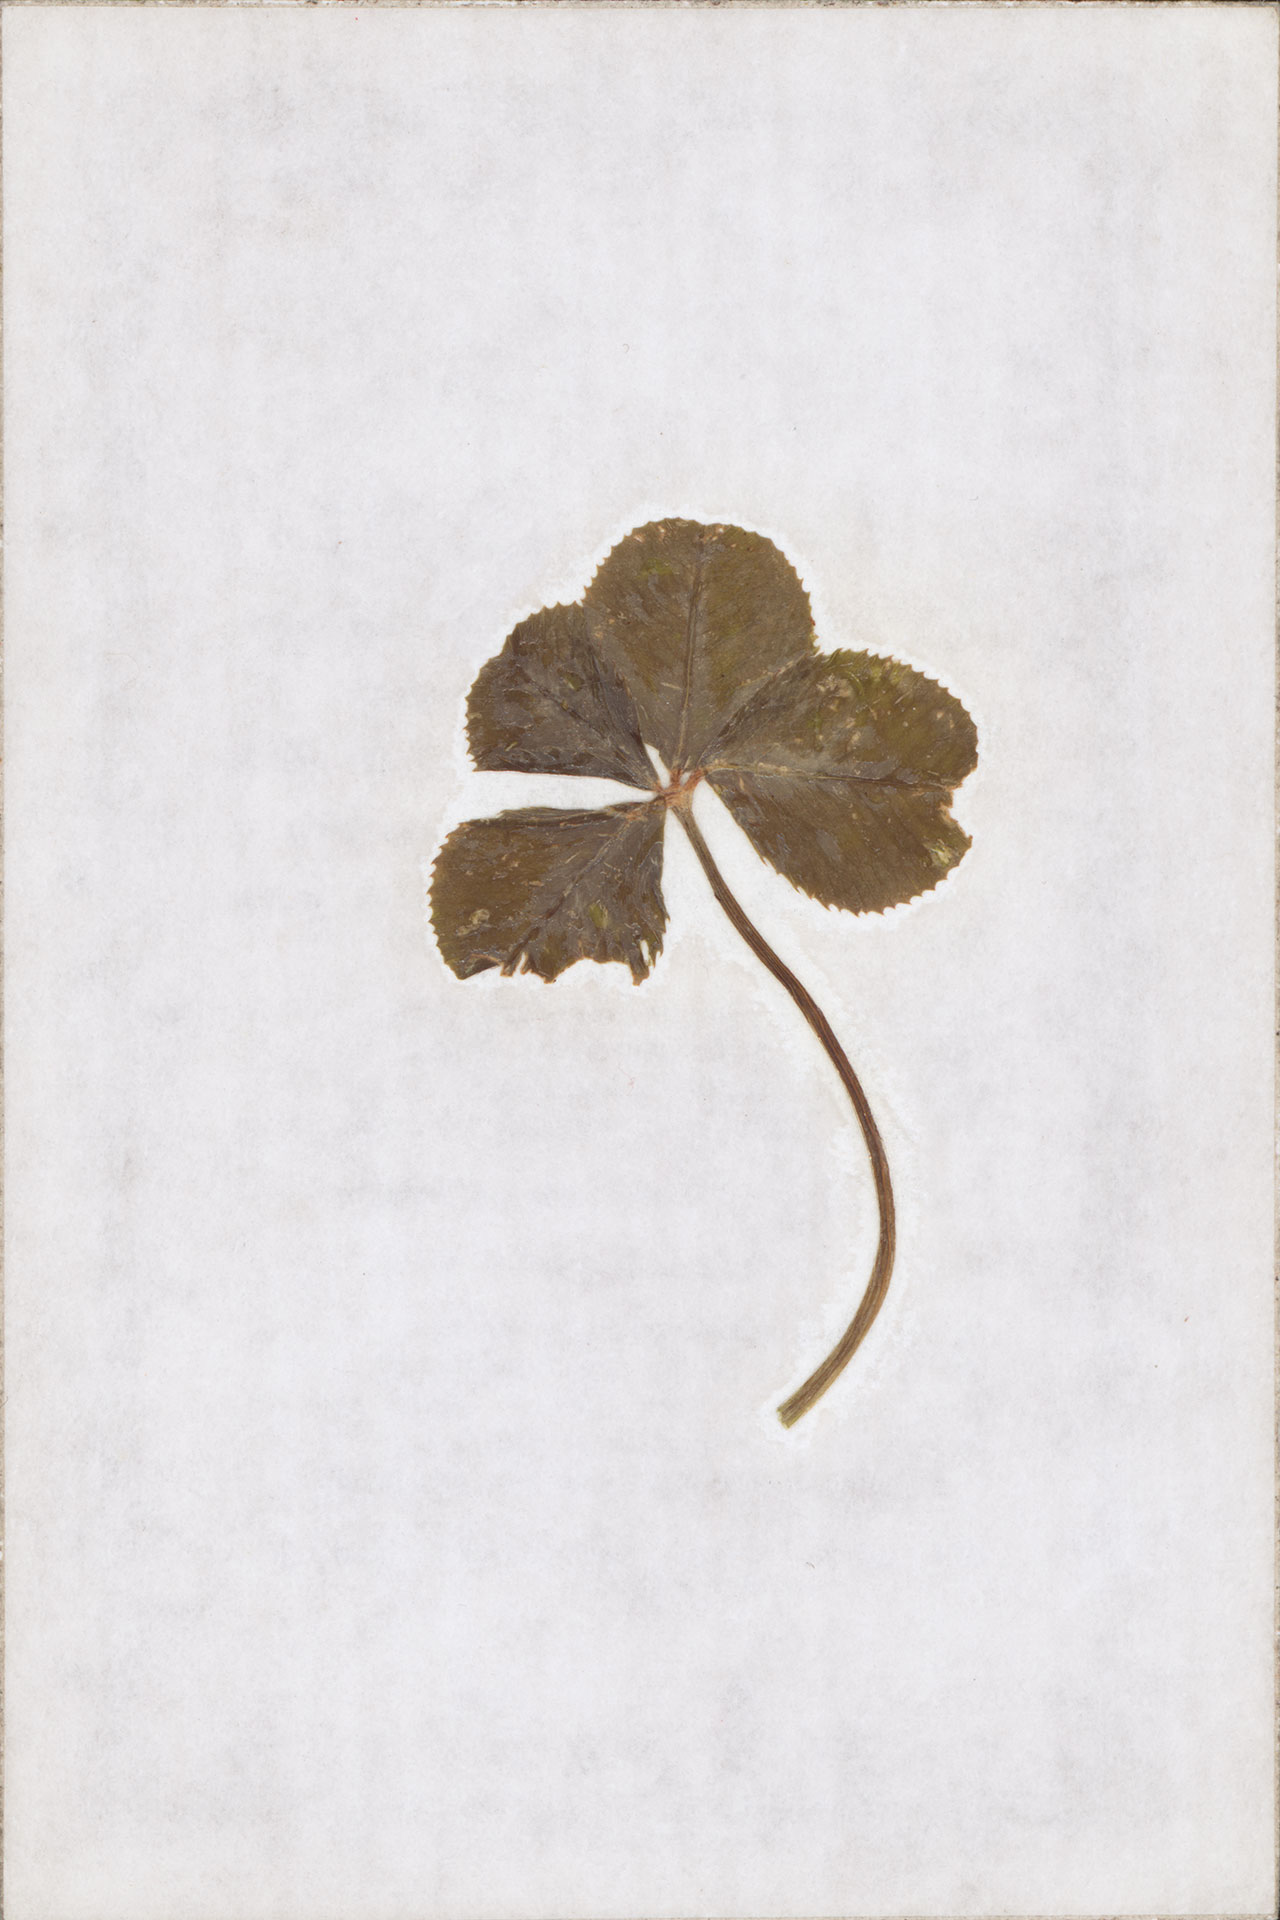 A four-leaf clover, a rare variation of the common three-leaf clover that Jacques Arpels considered a lucky charm. © Van Cleef & Arpels.